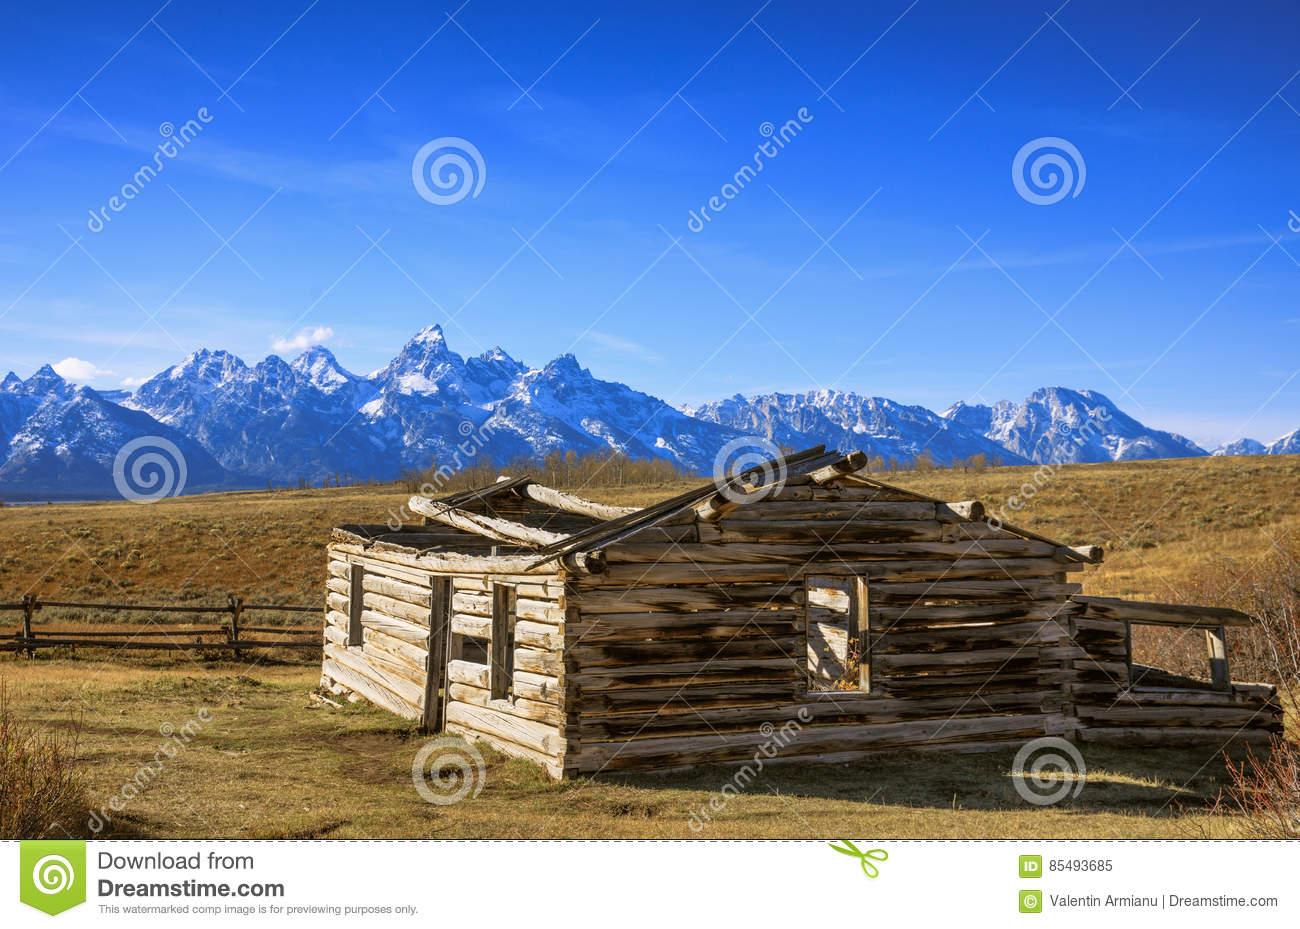 » The Shane Cabins: Authentic Homestead in Grand Teton